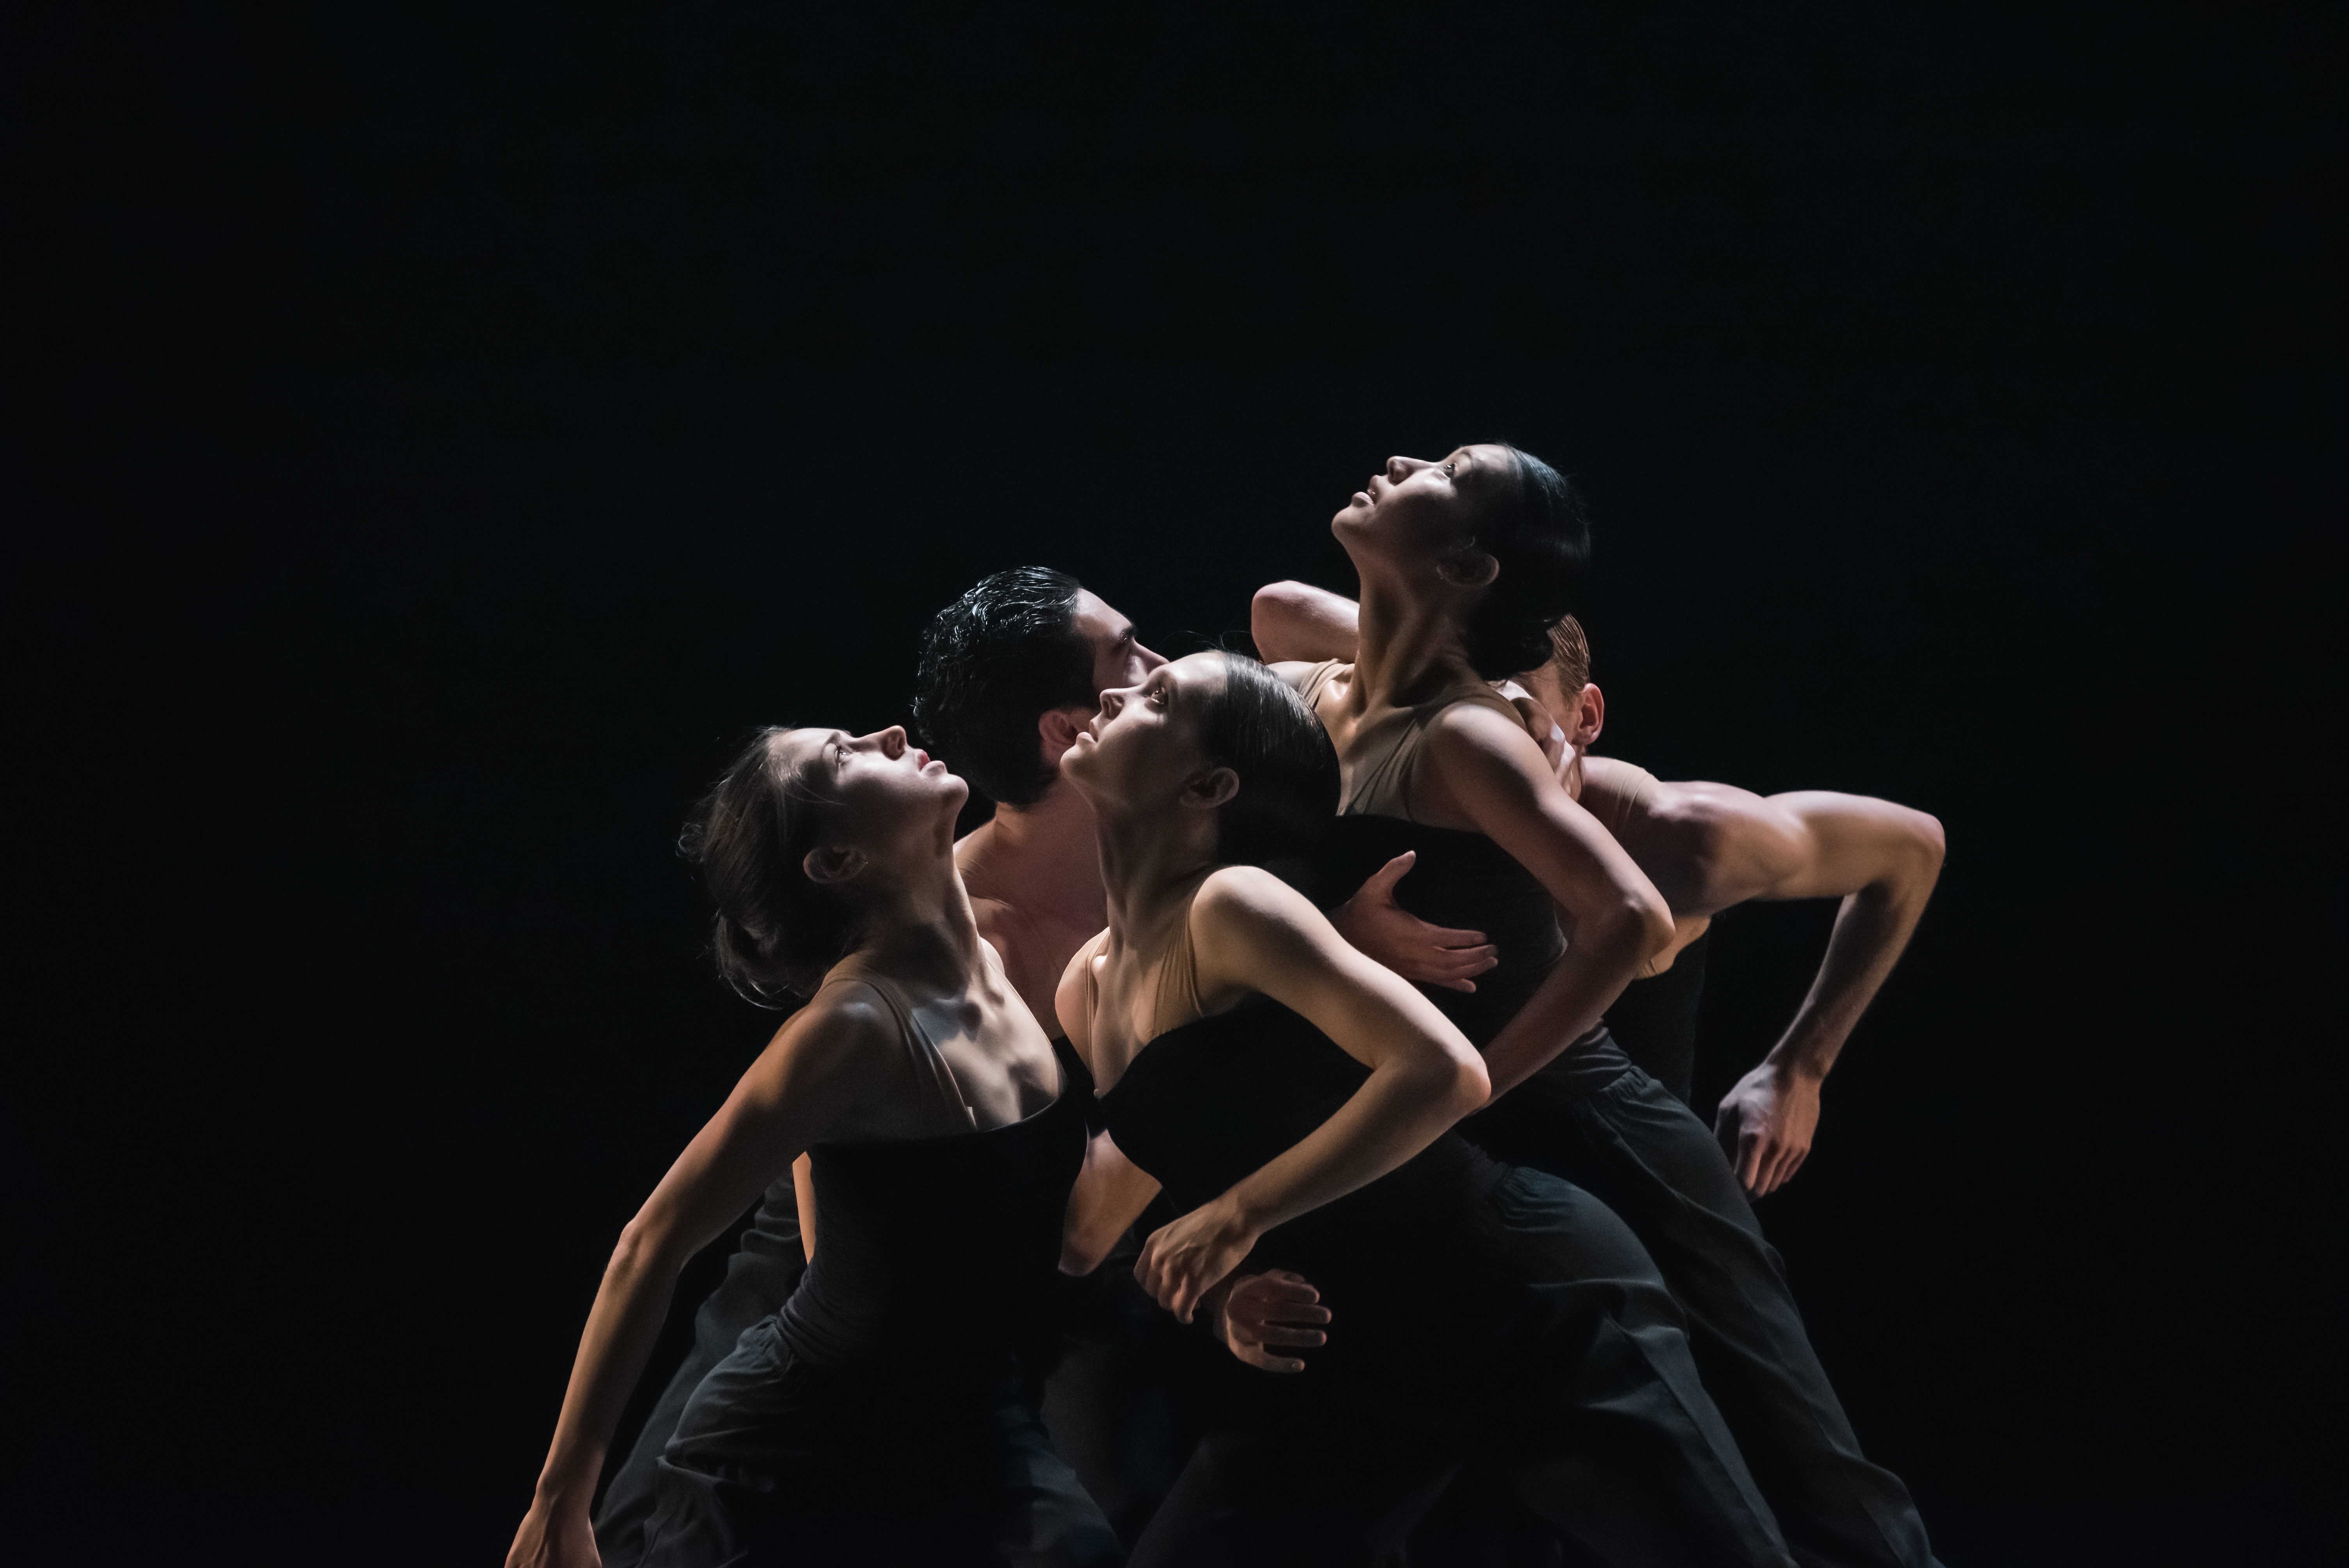 Dancer grouped together on a black stage, looking up.